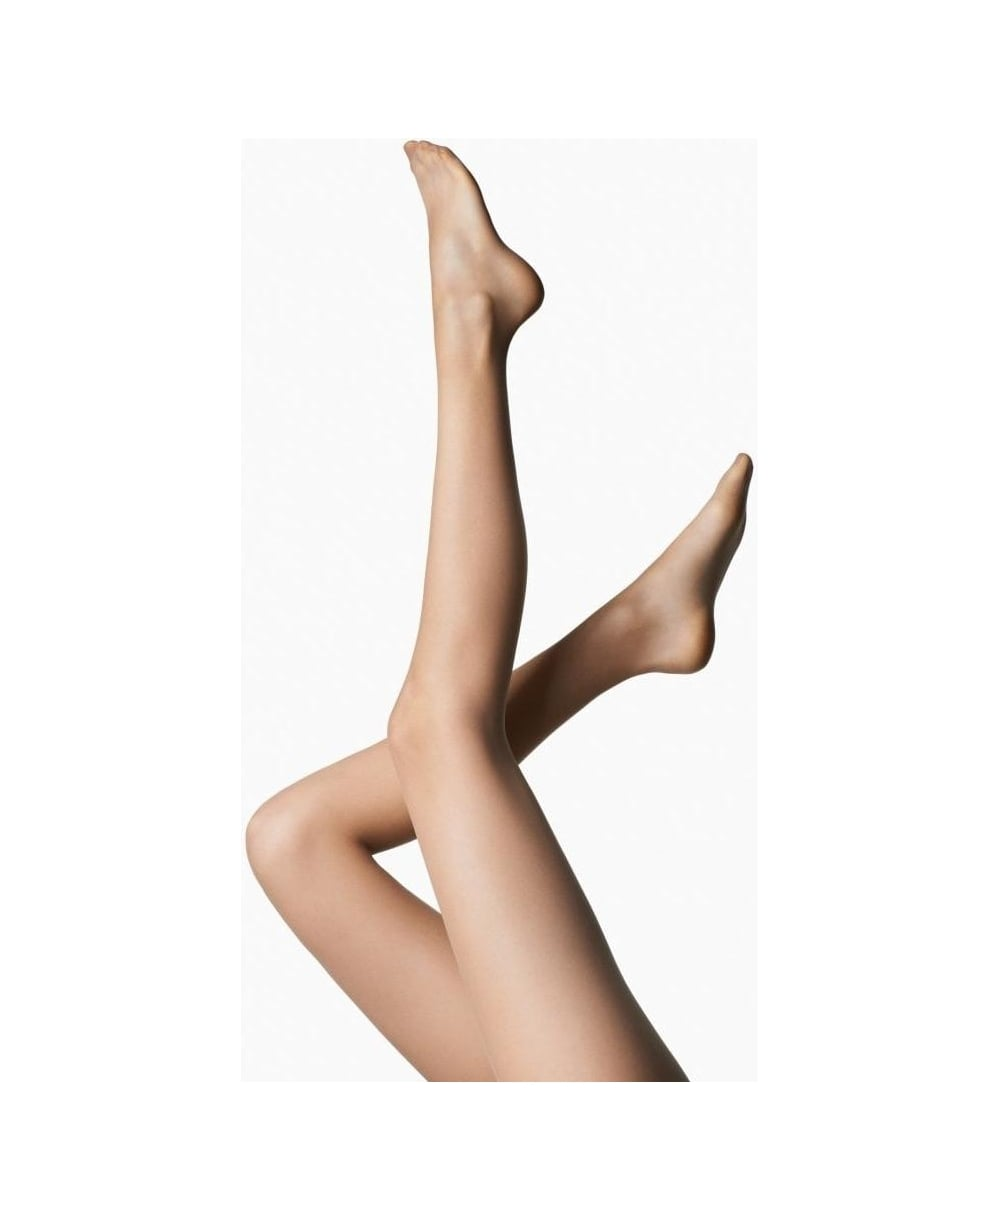 bd62829dbe151 Fogal Catwalk 10 Denier Tights - Tights from luxury-legs.com UK